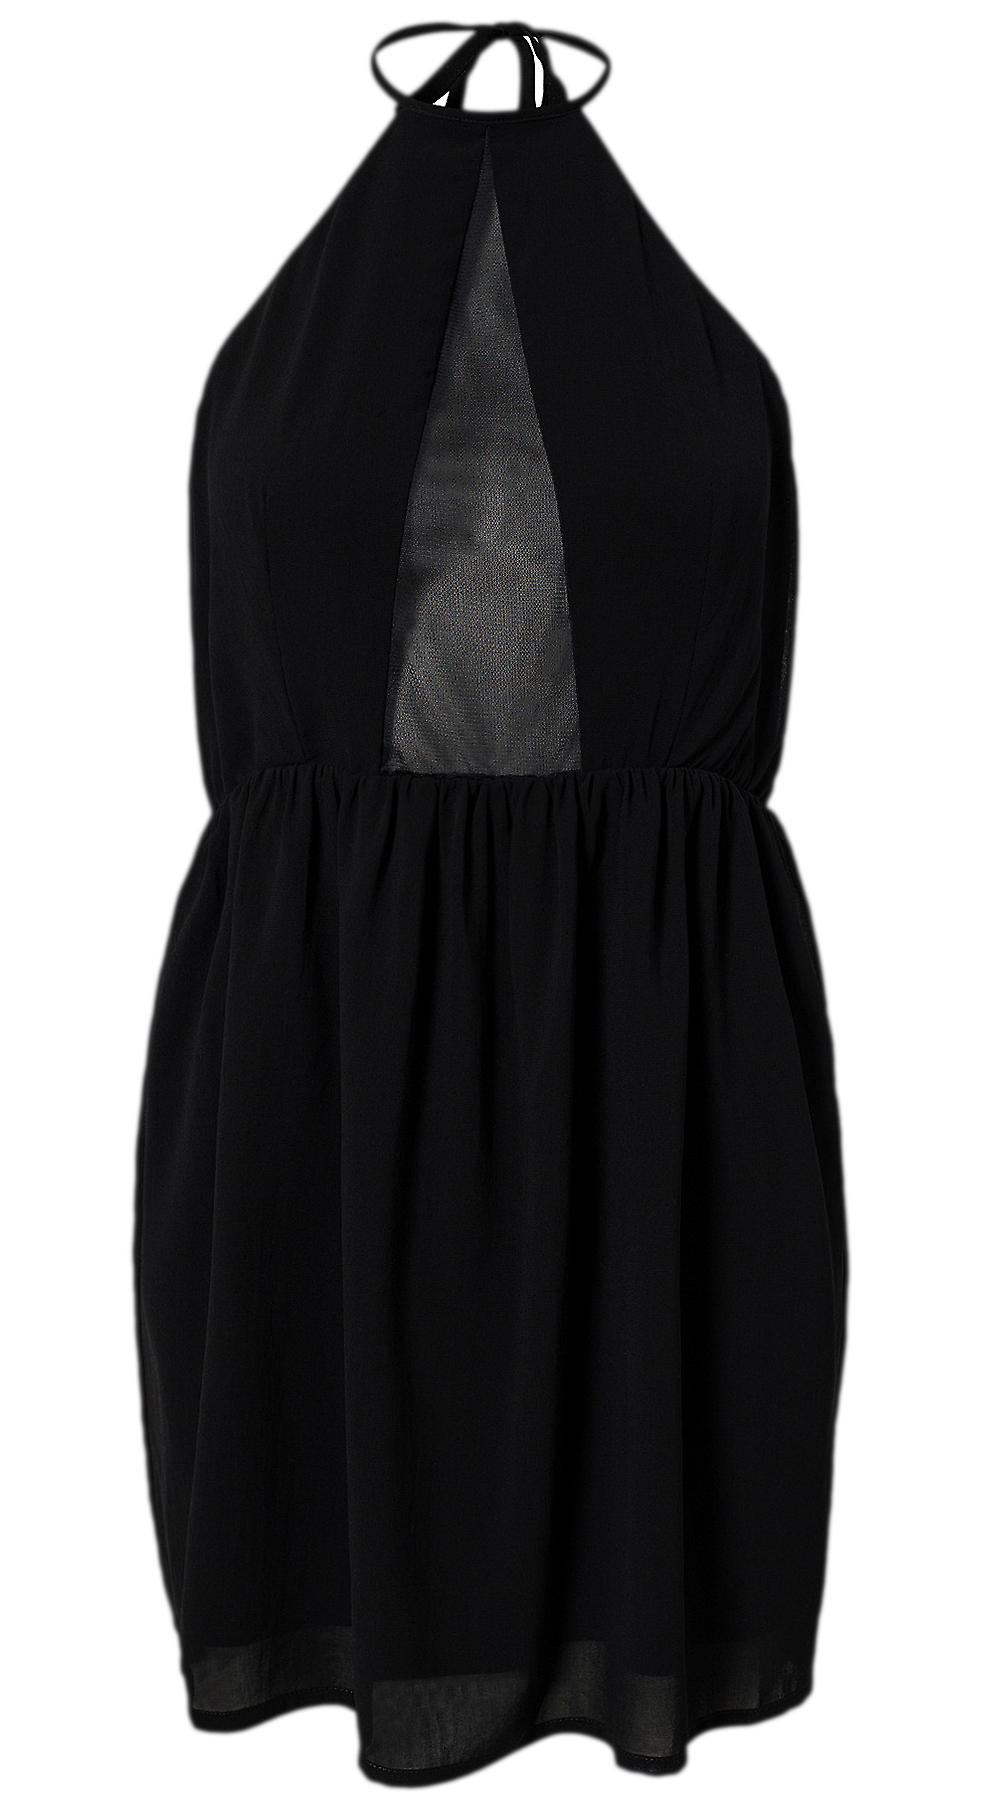 Waooh - On Summer Neckline Dress With Semi-Transparent Formen